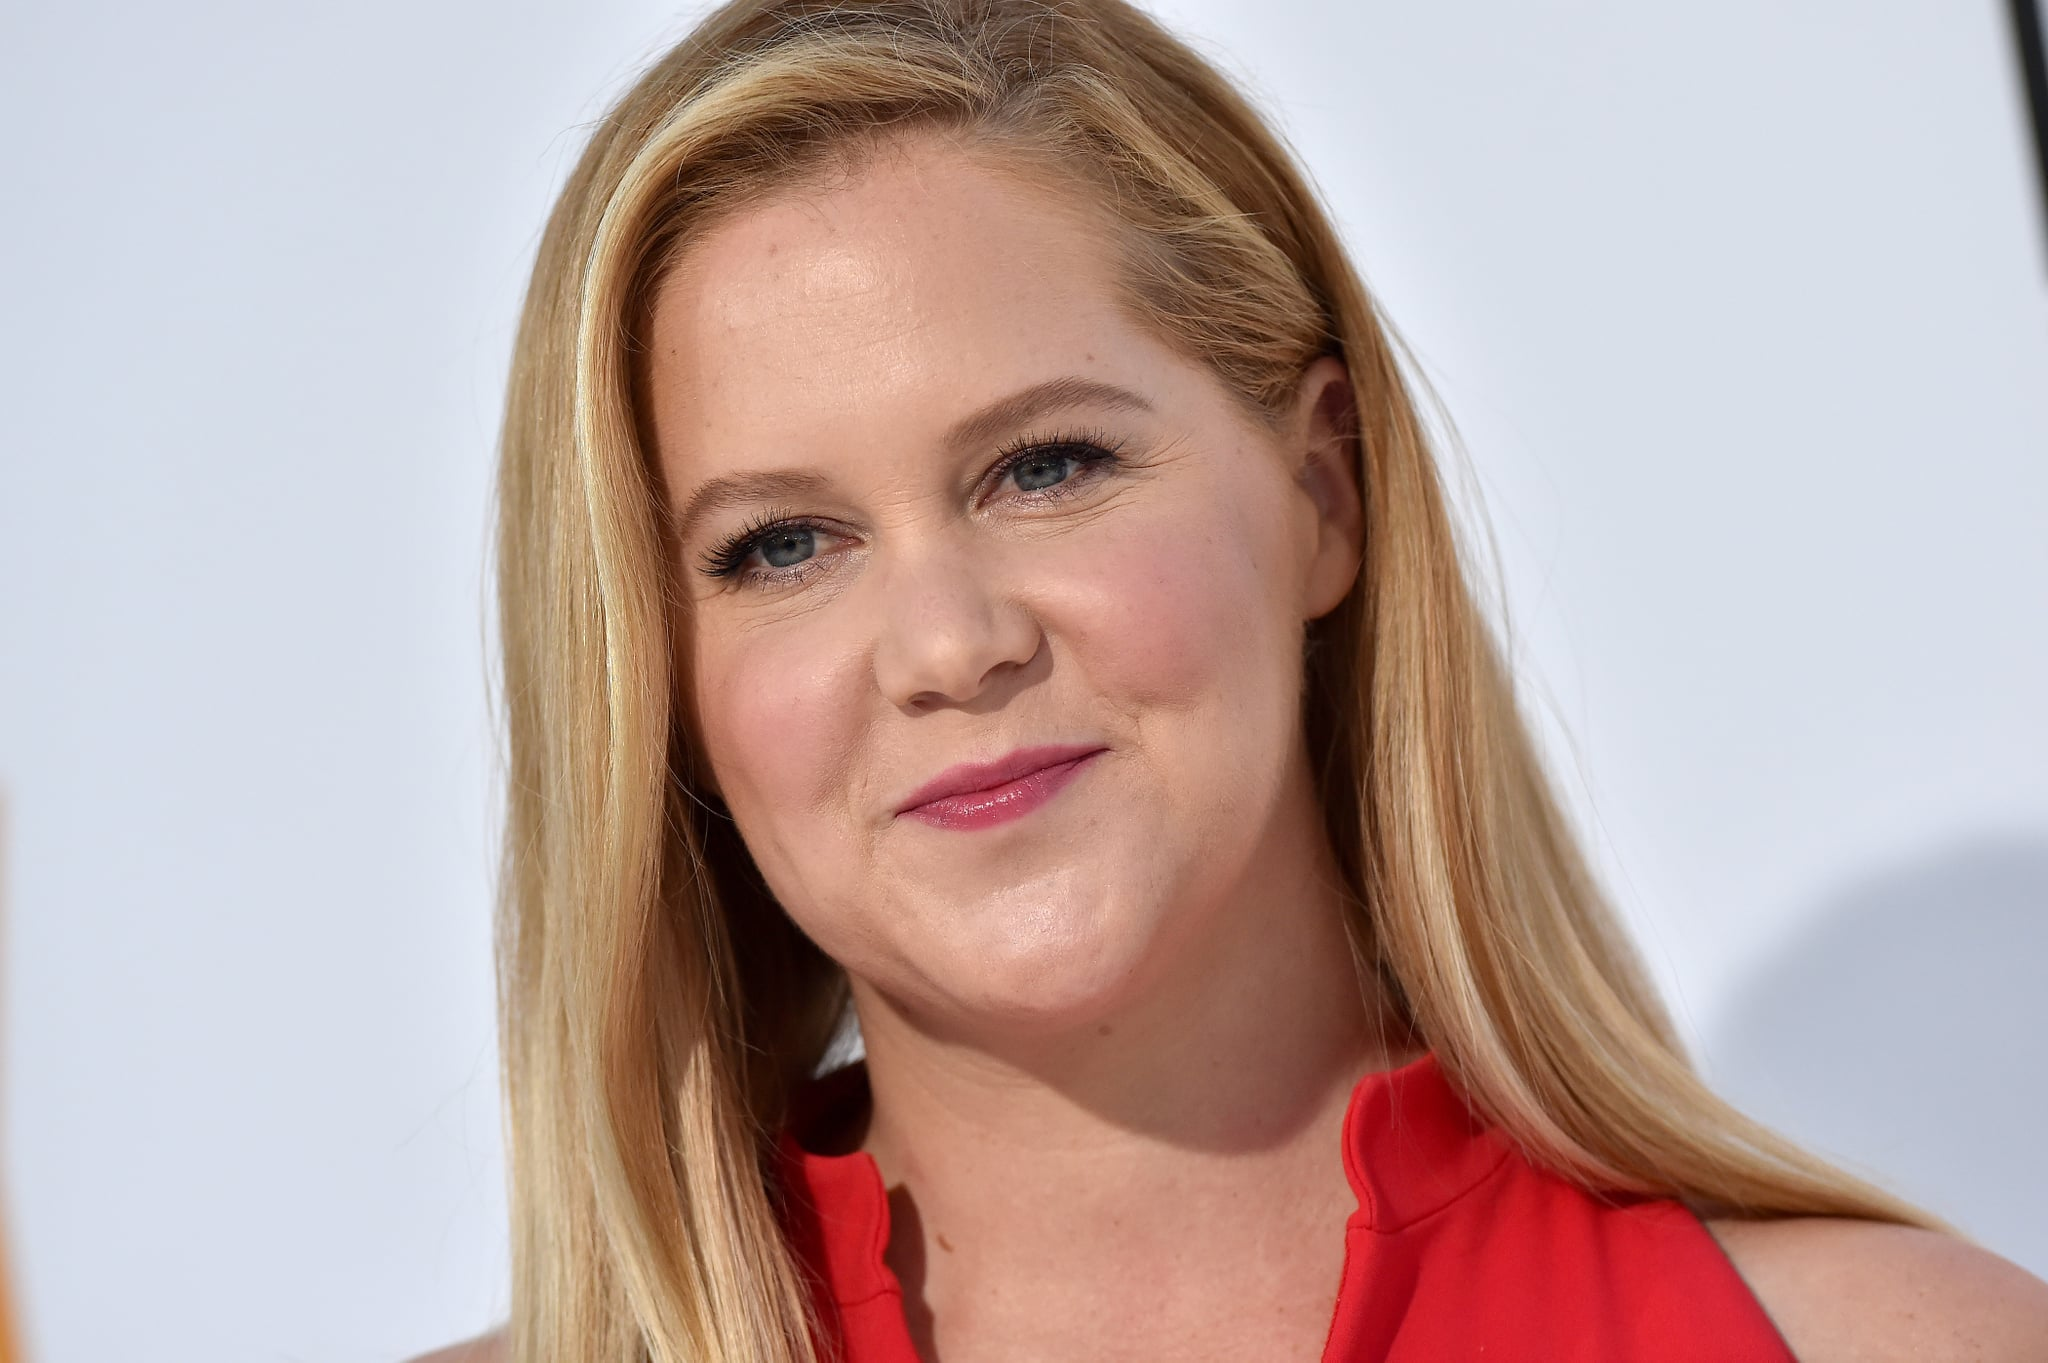 WESTWOOD, CA - APRIL 17:  Actress Amy Schumer arrives at the premiere of STX Films' 'I Feel Pretty' at Westwood Village Theatre on April 17, 2018 in Westwood, California.  (Photo by Axelle/Bauer-Griffin/FilmMagic)